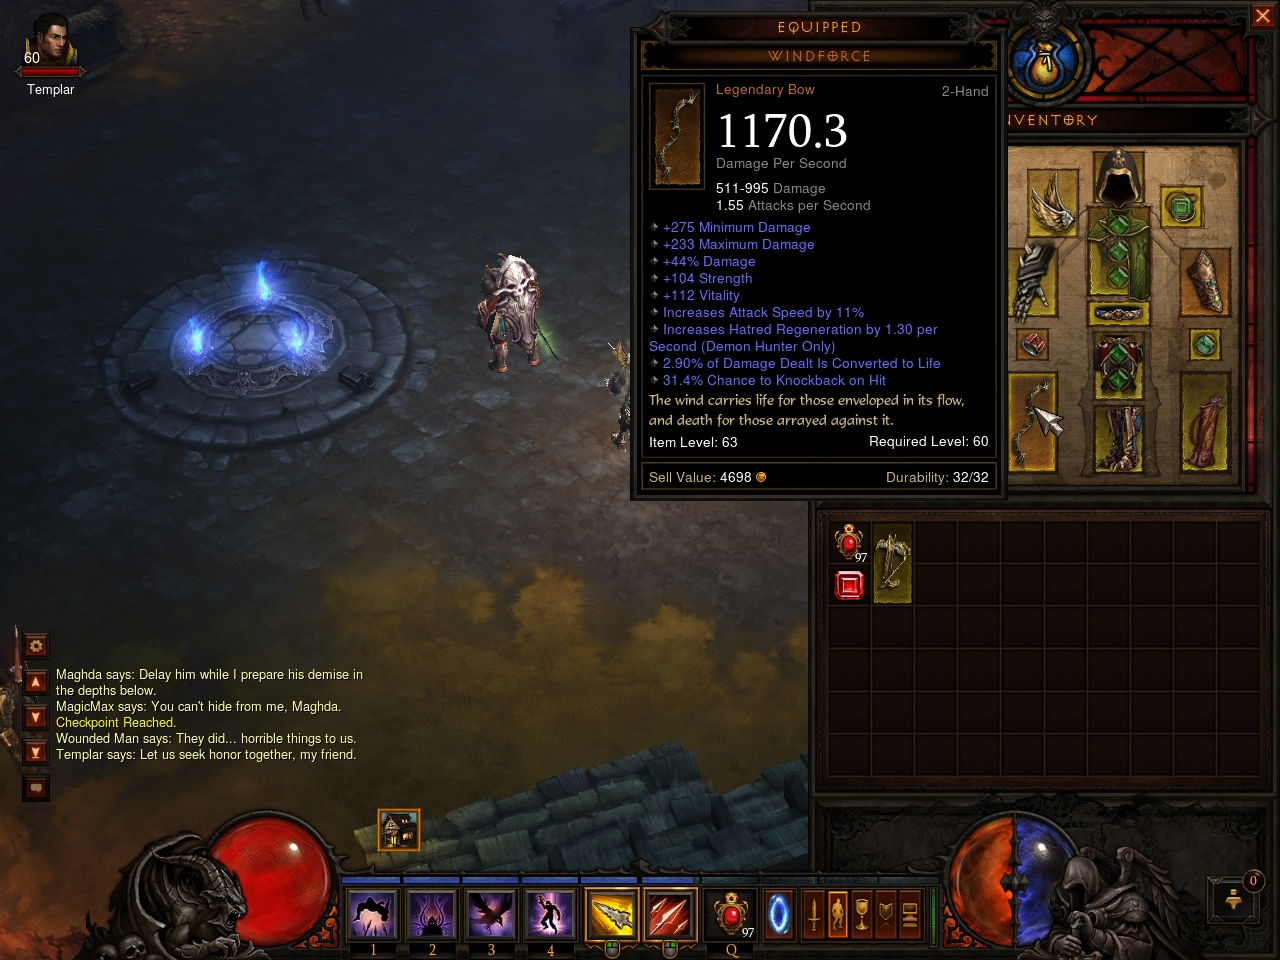 dimmauk games dont peculiar know what think this just show post trading your diablo legendary